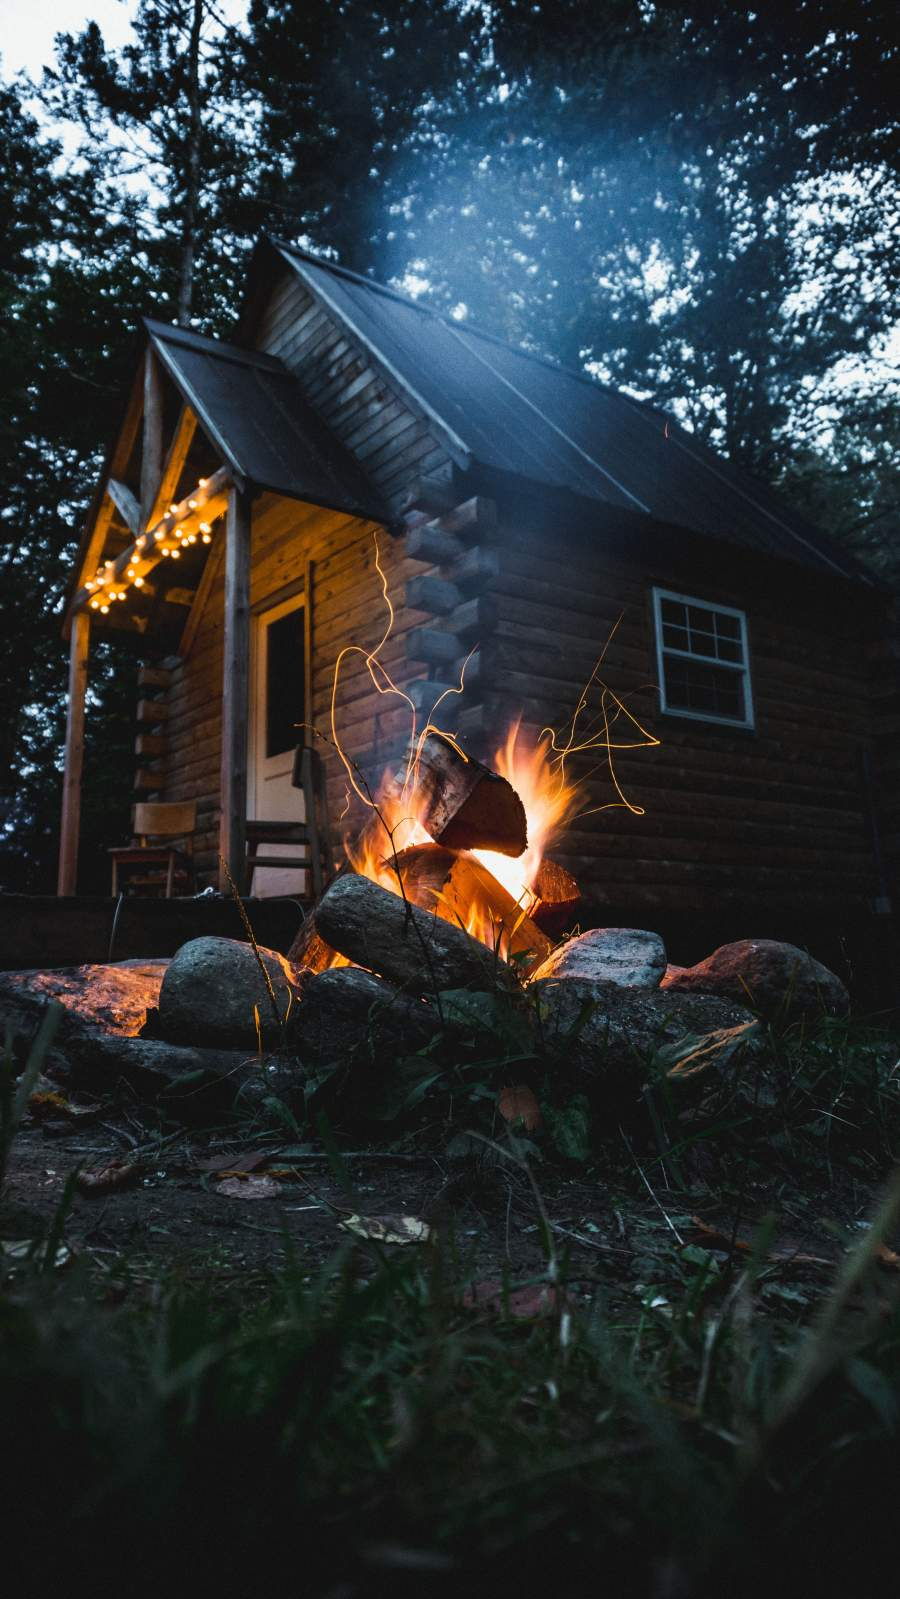 Wood Cabin Camping Fire iPhone Wallpaper